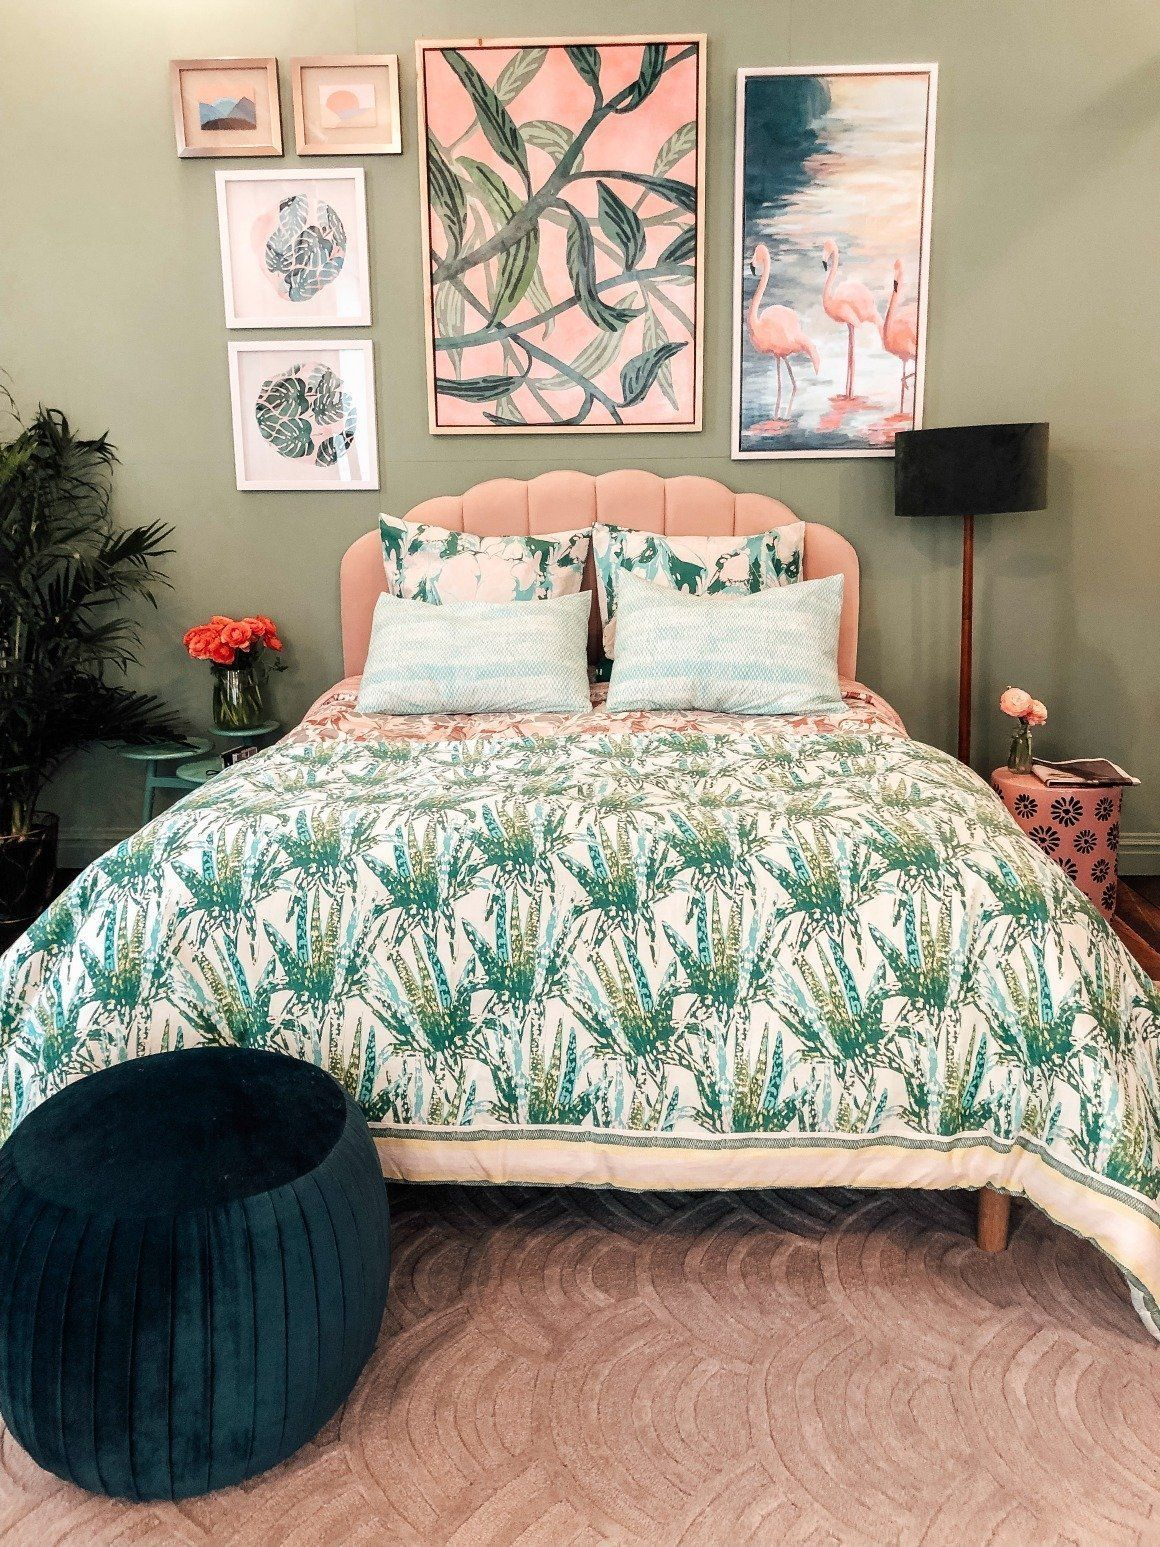 New Home Decor Collection With Drew Barrymore And Walmart Nesting With Grace Home Decor Eclectic Home Walmart Home